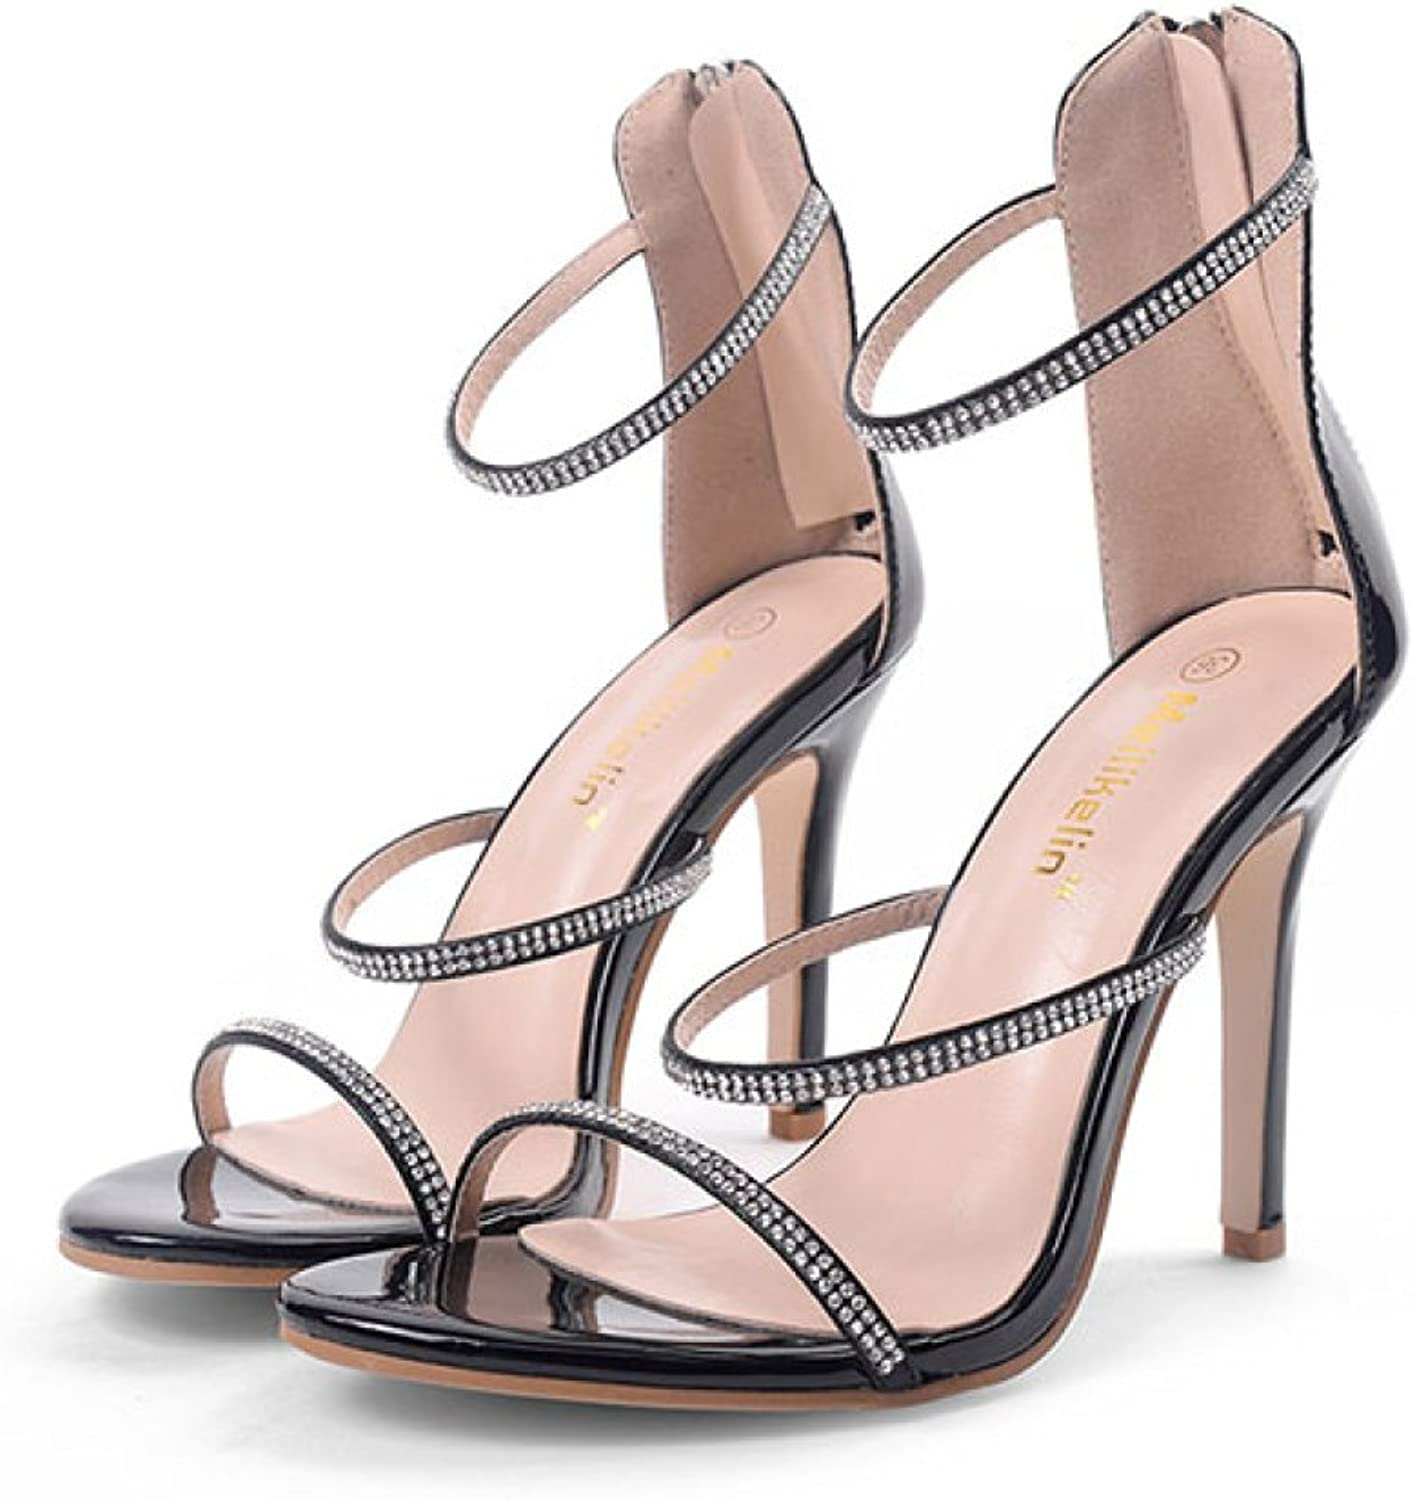 Womens Stiletto High Heels Sexy Ankle Strap Sandals Ladies Summer Rhinestone Peep Toe shoes Party Prom Strappy Pumps,Black-EU35 225